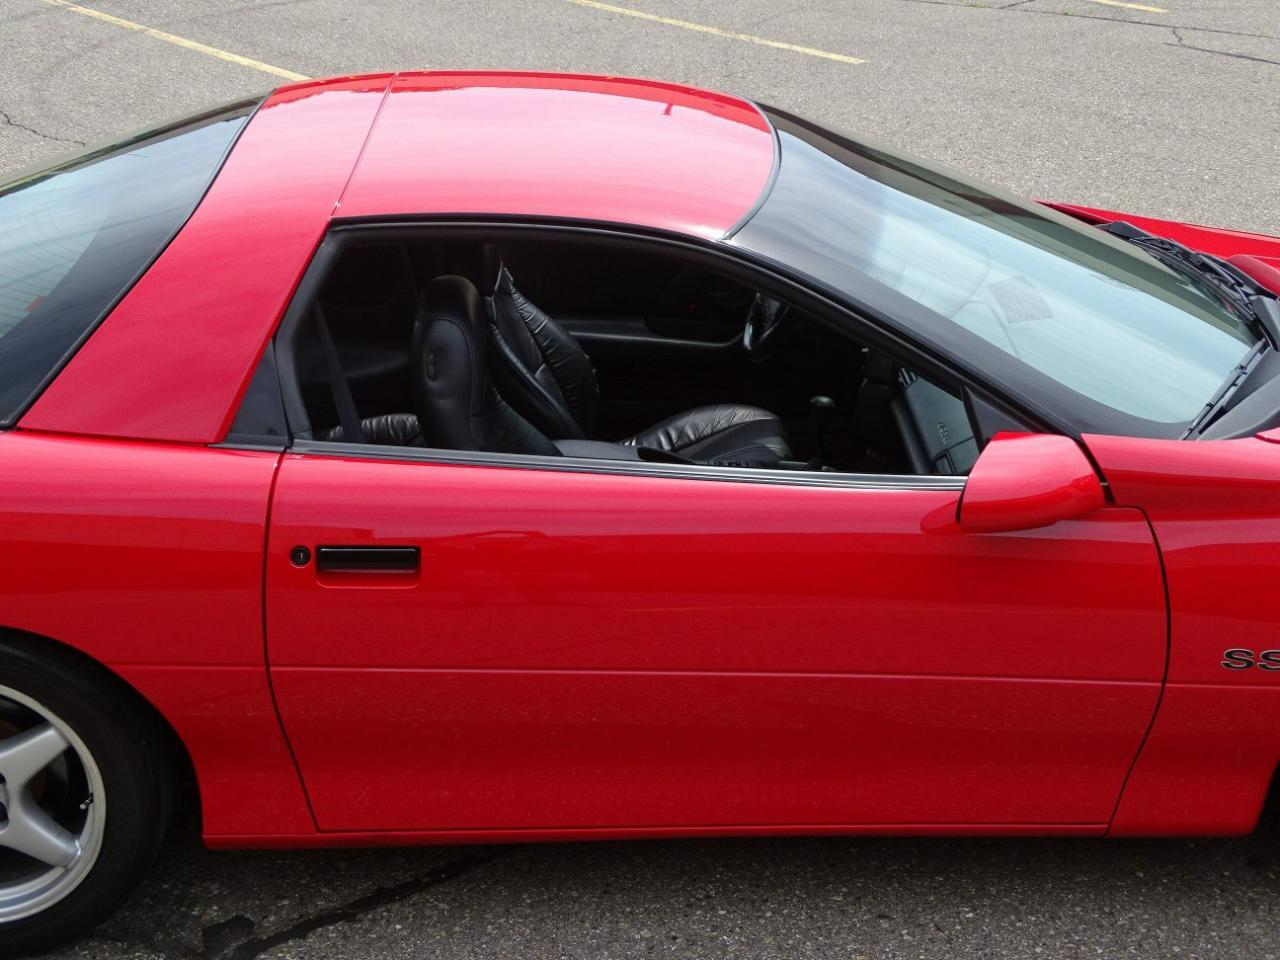 Large Picture of '96 Chevrolet Camaro located in Dearborn Michigan - $13,595.00 Offered by Gateway Classic Cars - Detroit - LDUP